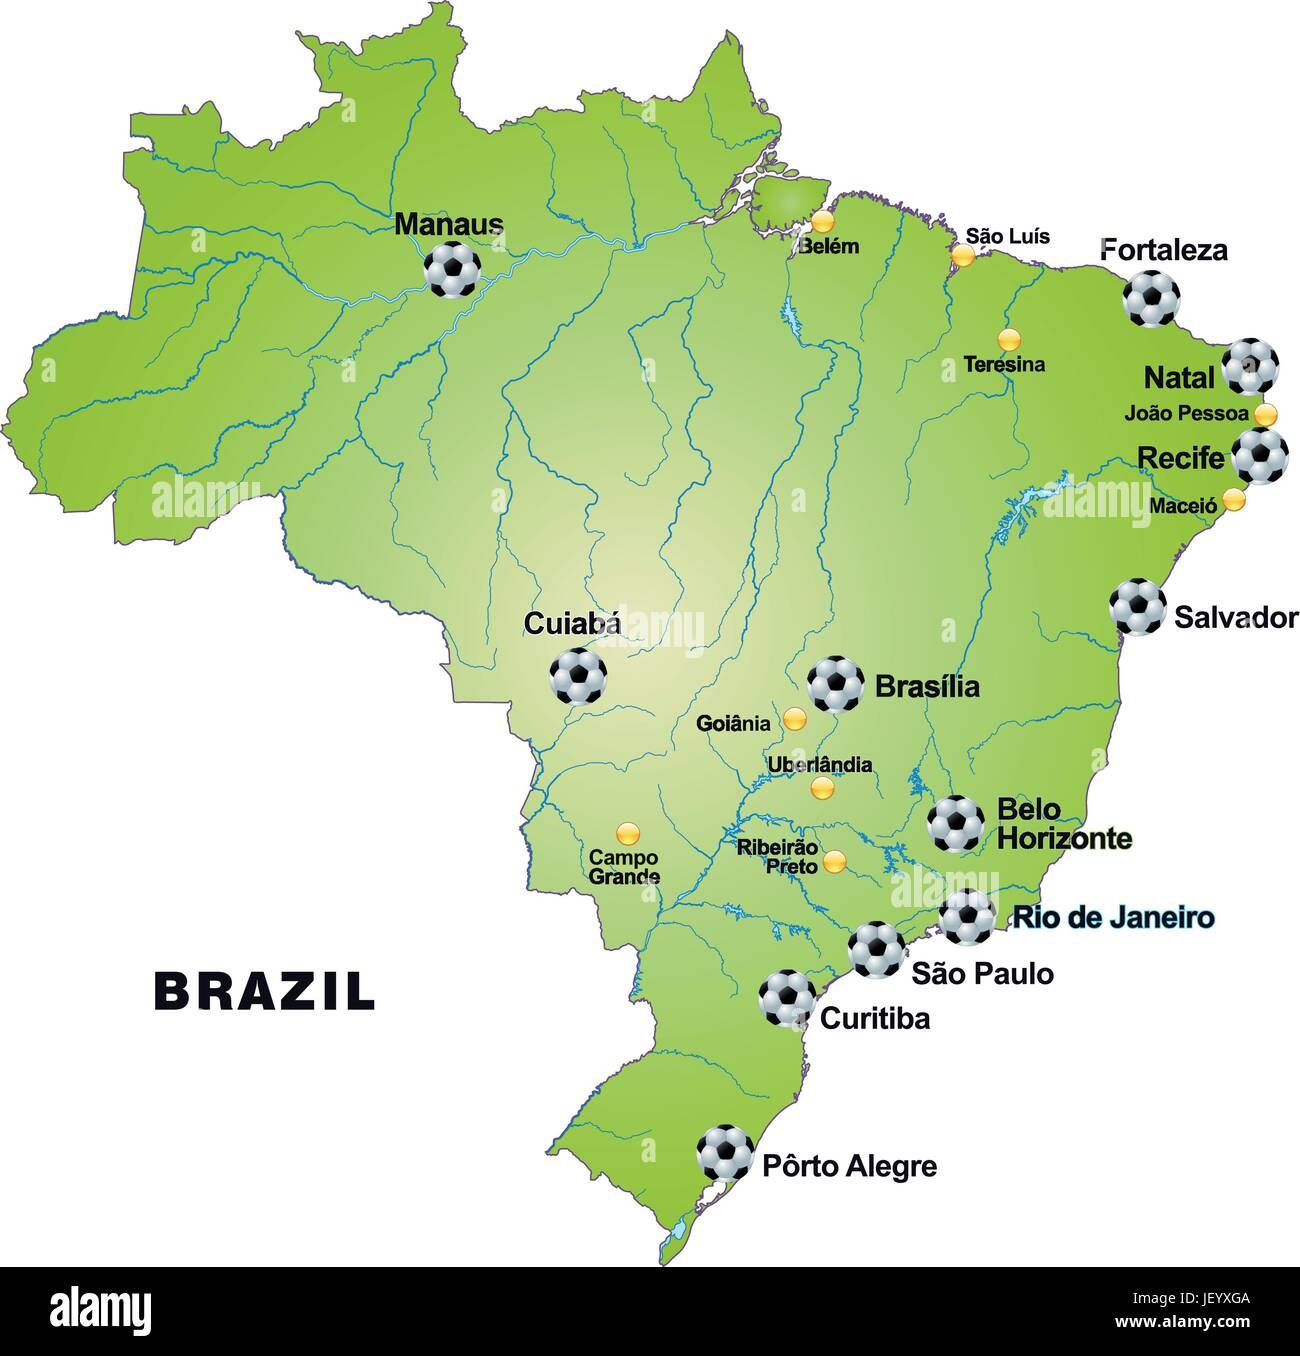 Card atlas map of the world map brazil card outline borders card atlas map of the world map brazil card outline borders atlas map gumiabroncs